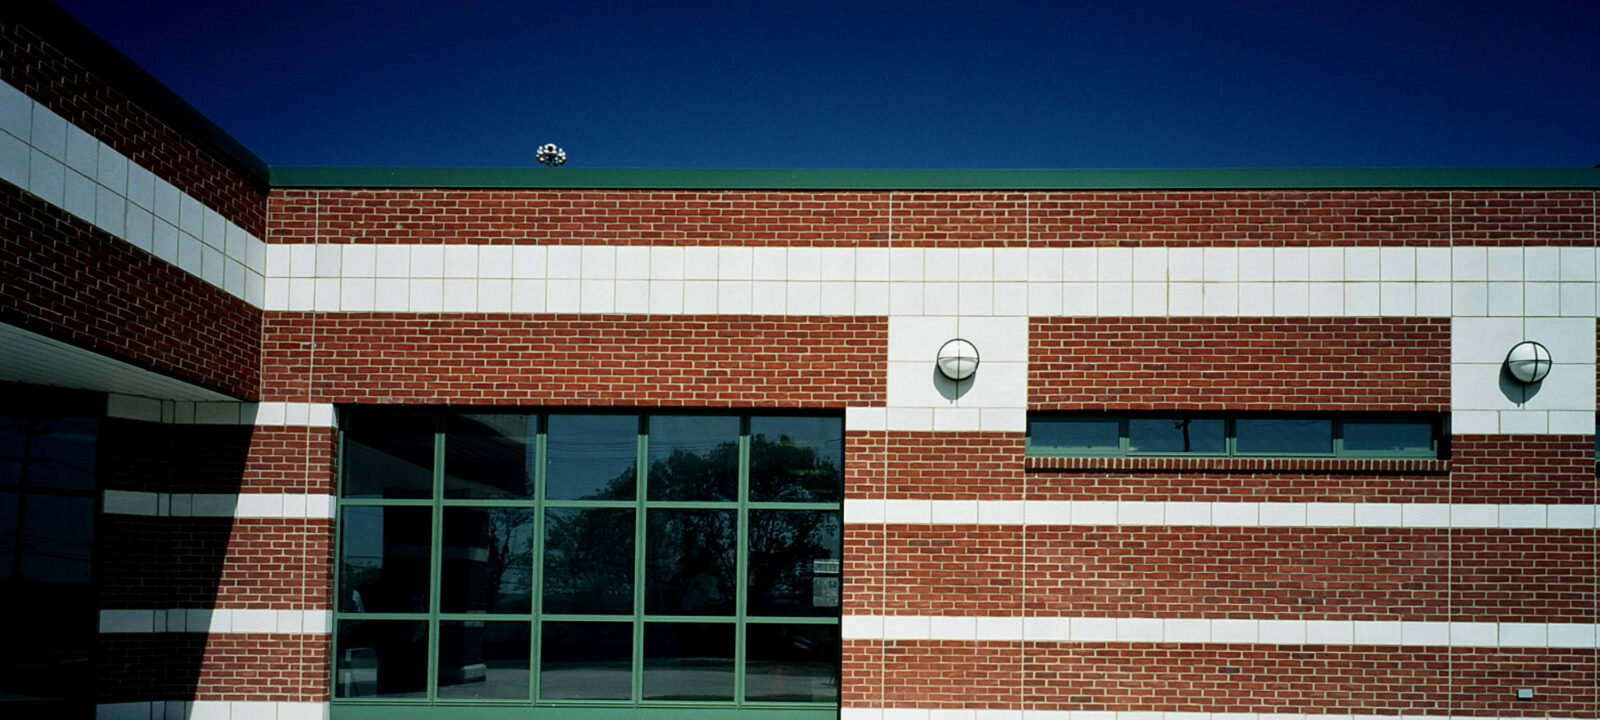 Patuxent Institution: Kitchen and Perimeter Security